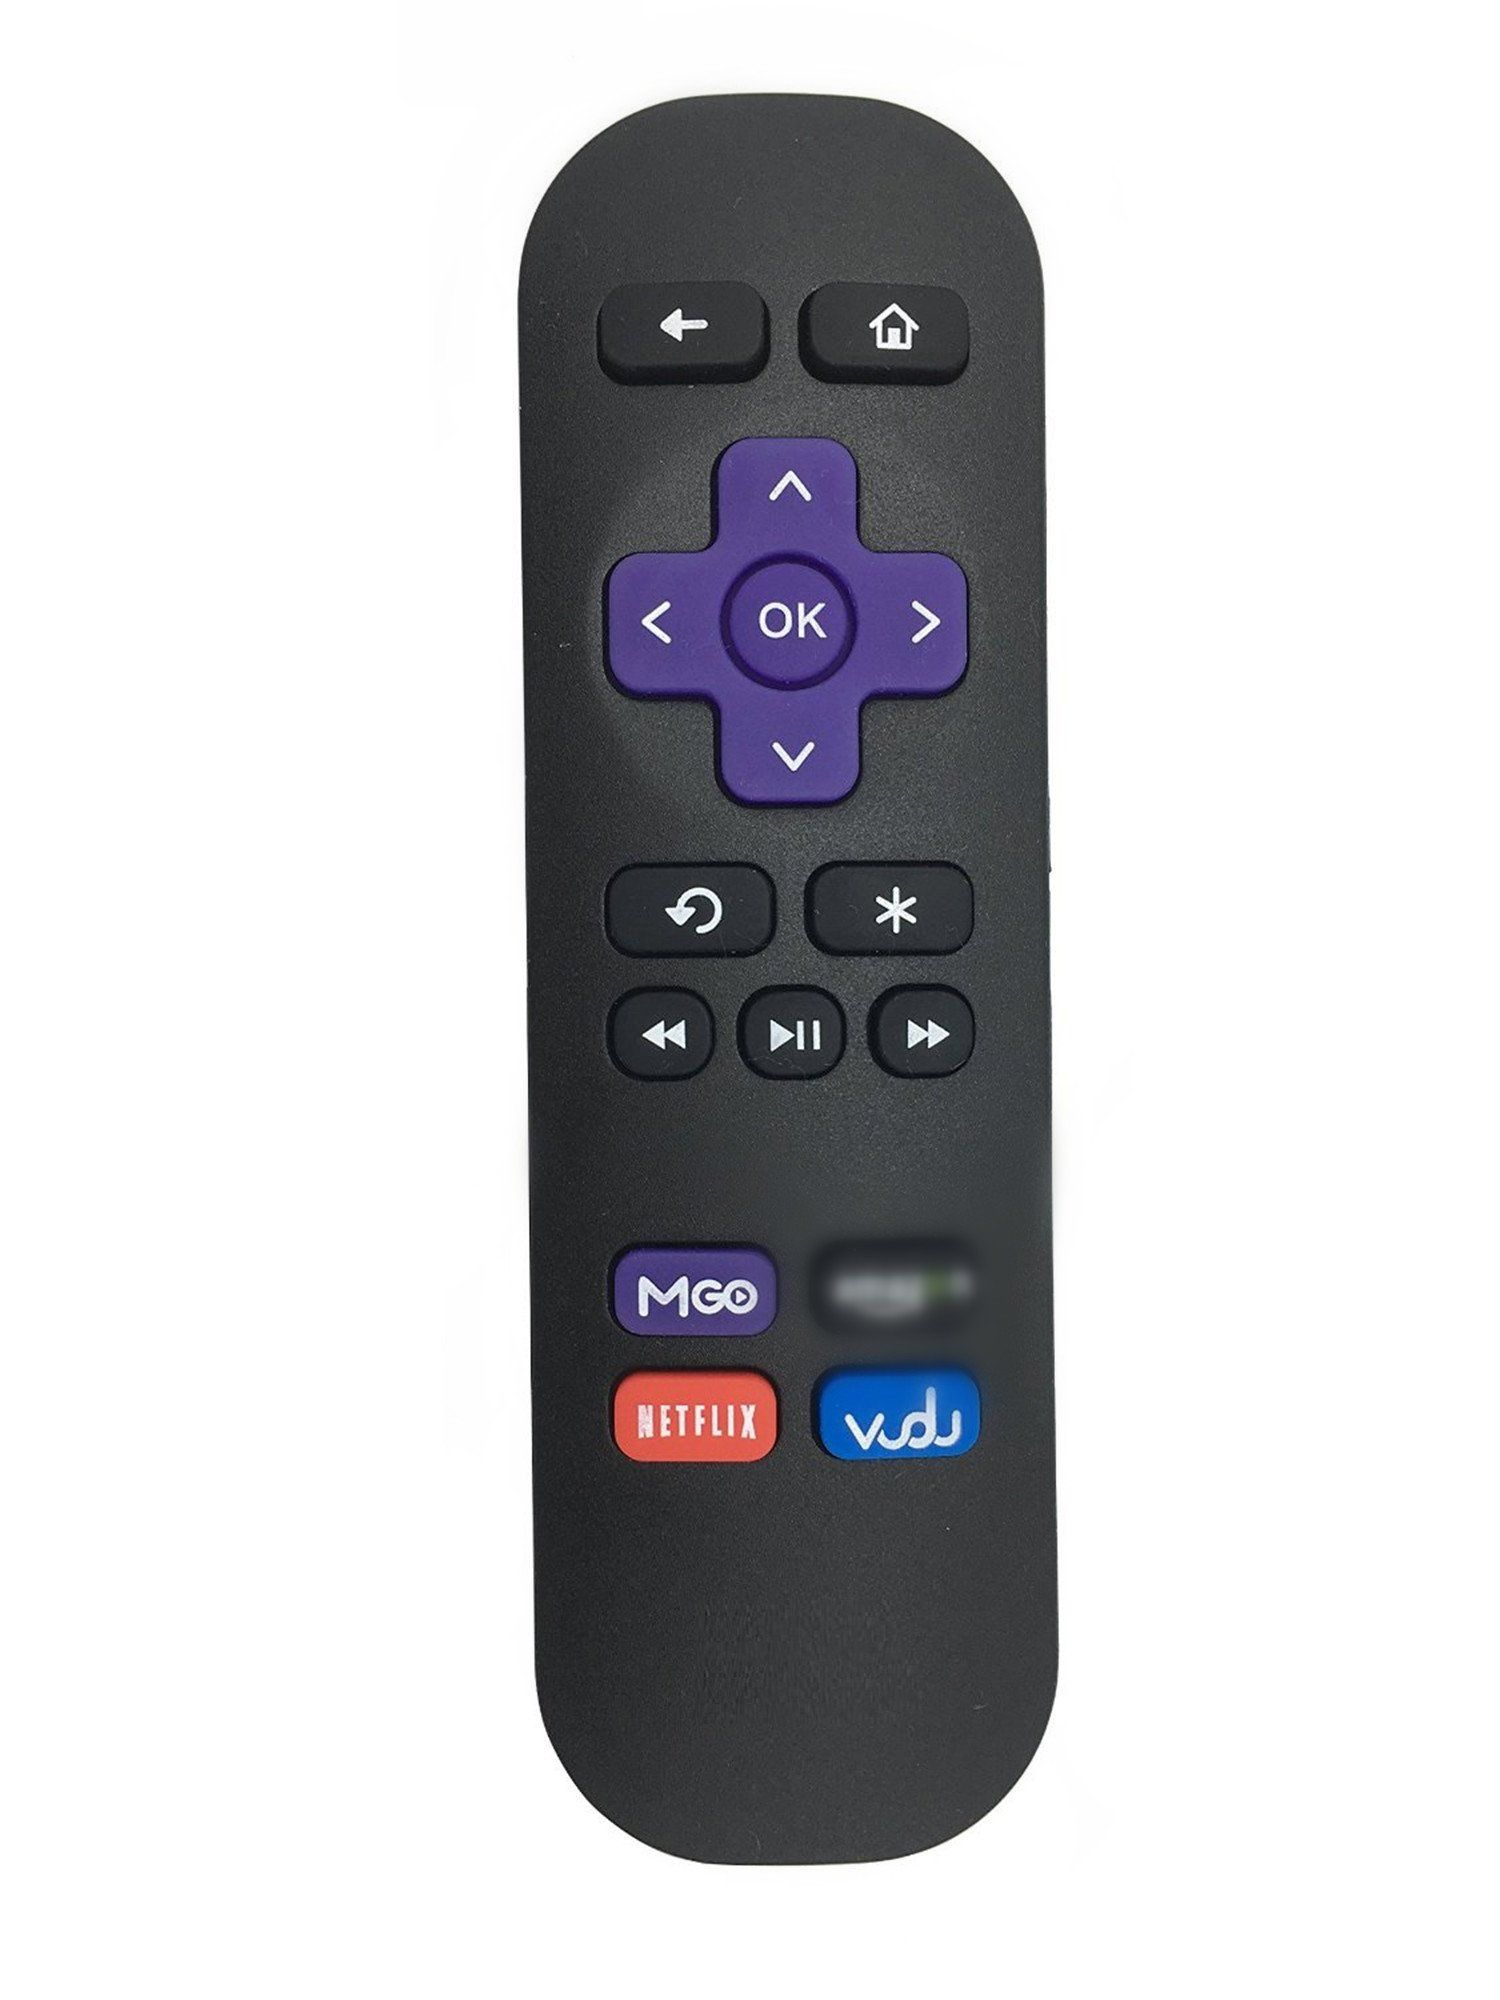 new replacement ir remote for roku 1 lt hd roku 2 xd xs roku 3 rh pinterest com Roku HD roku 2 xd instruction manual